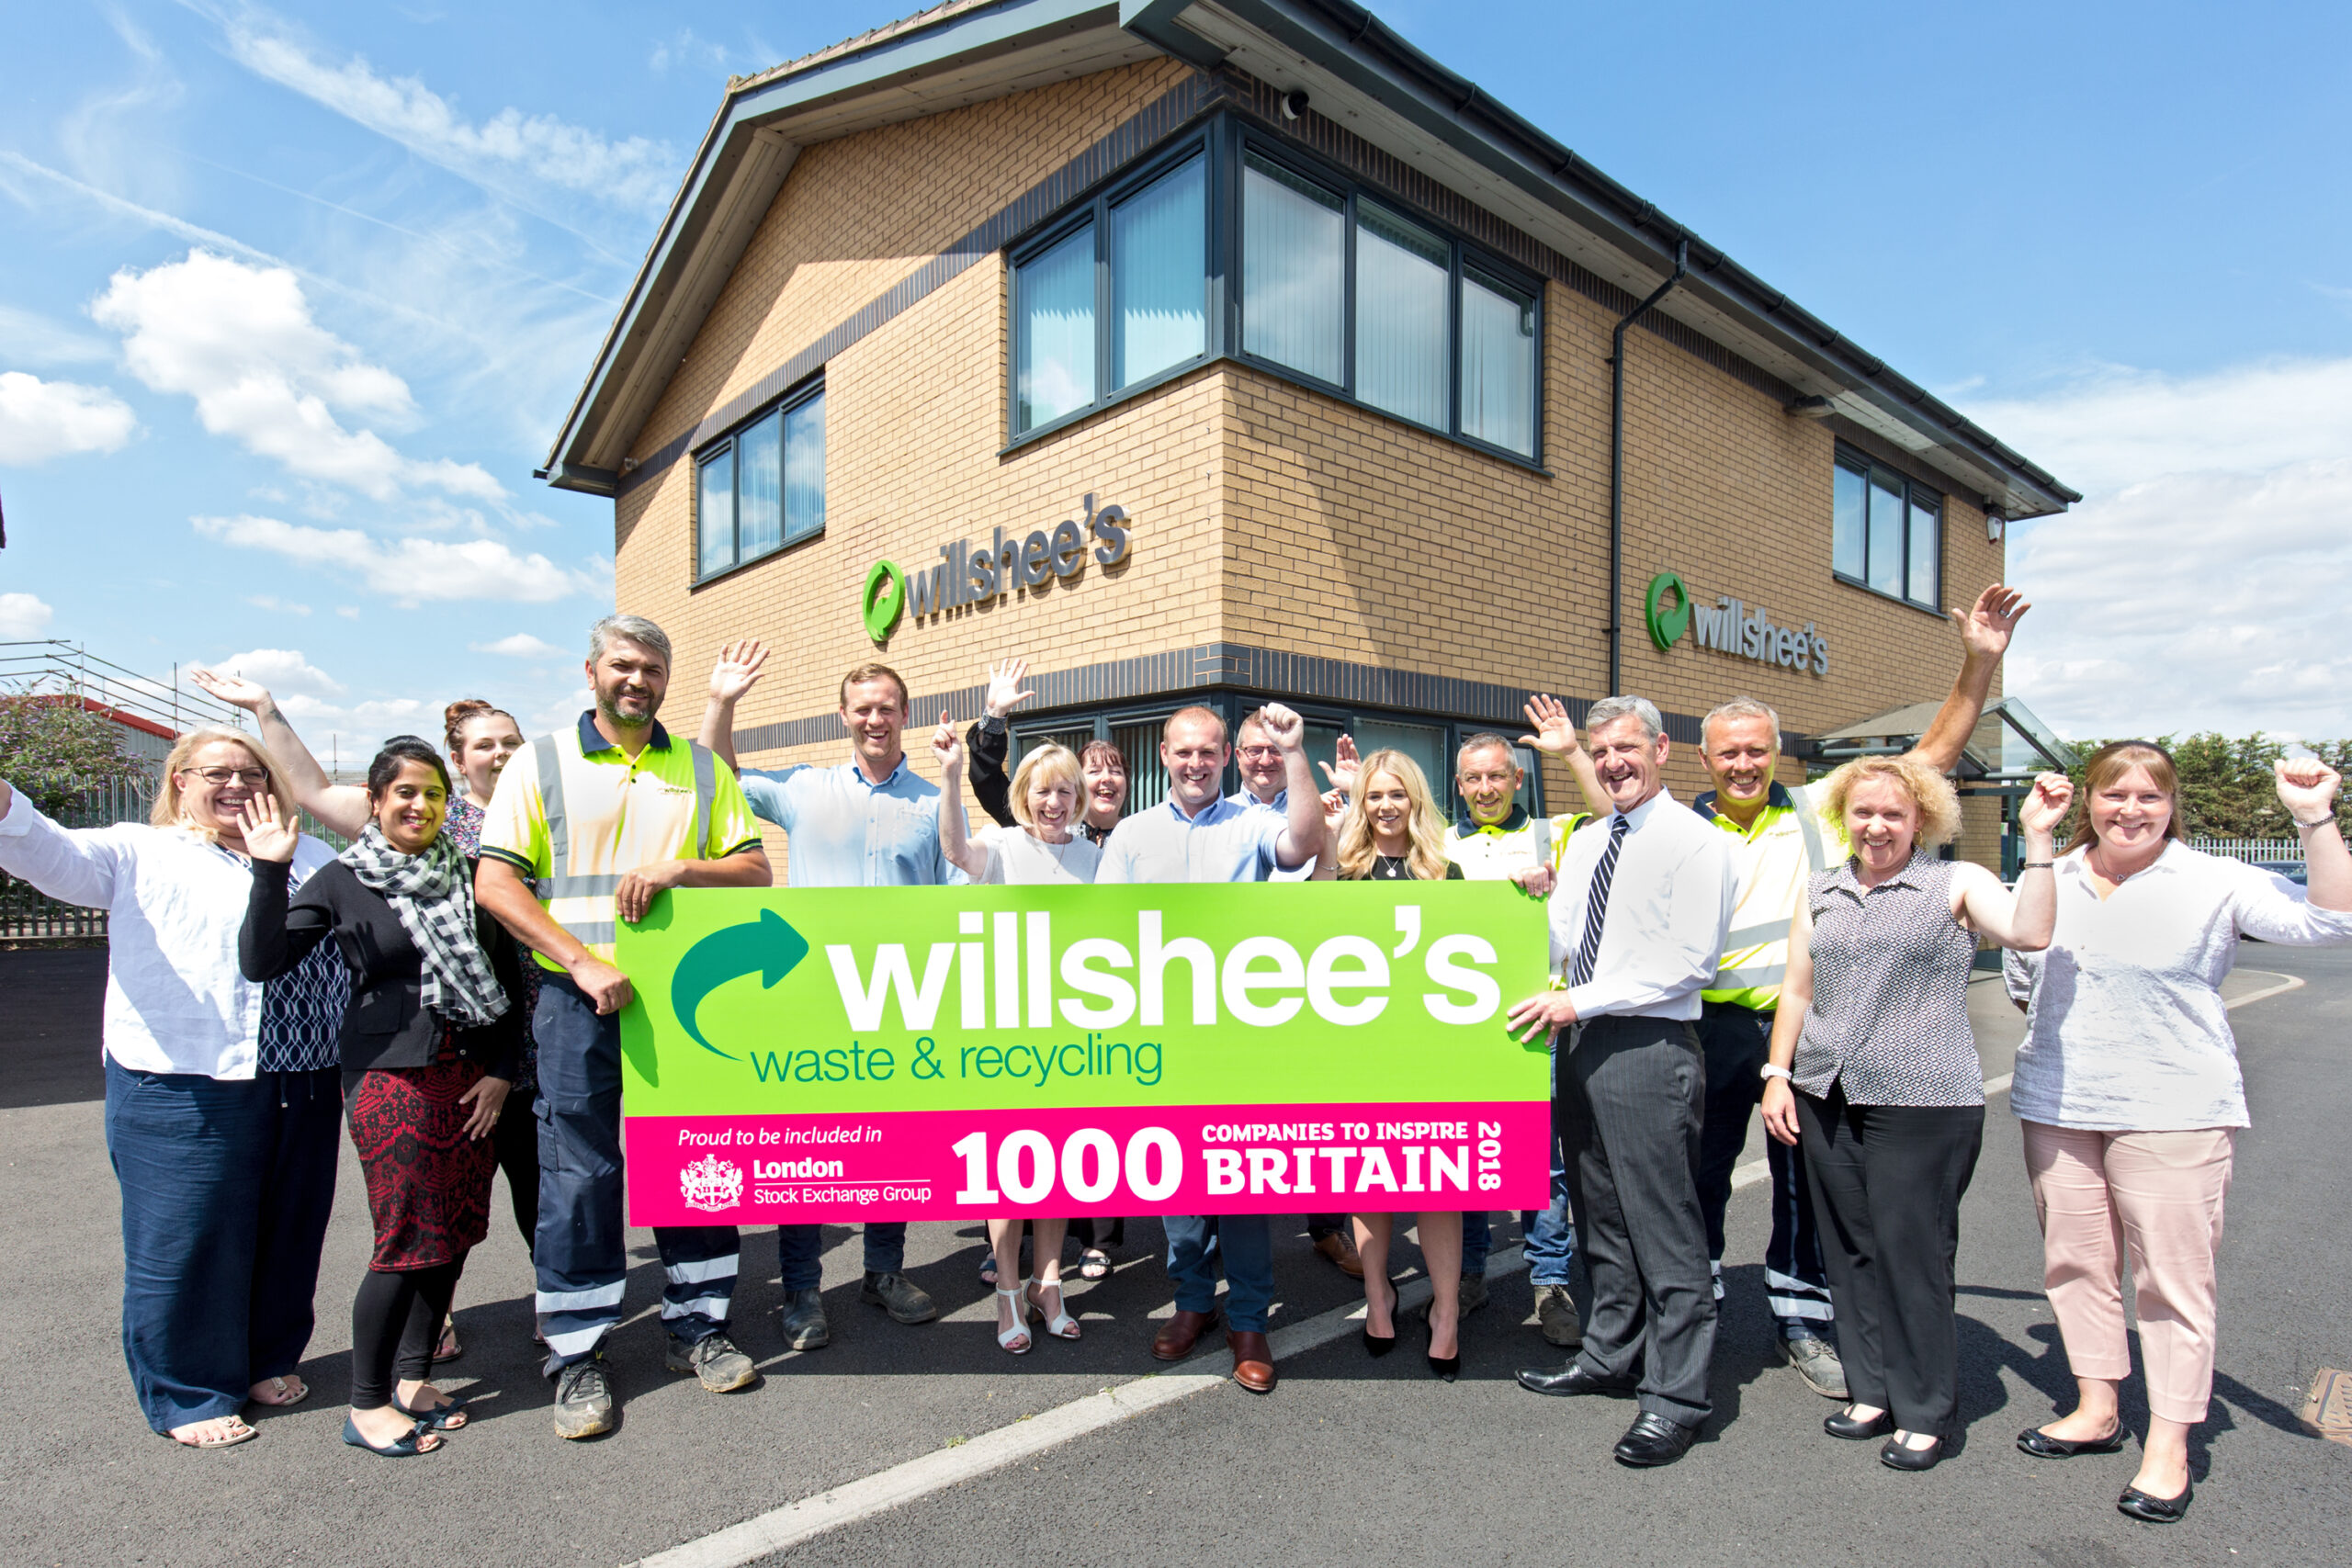 Fifteen people representing Willshee's outside their Burton HQ office